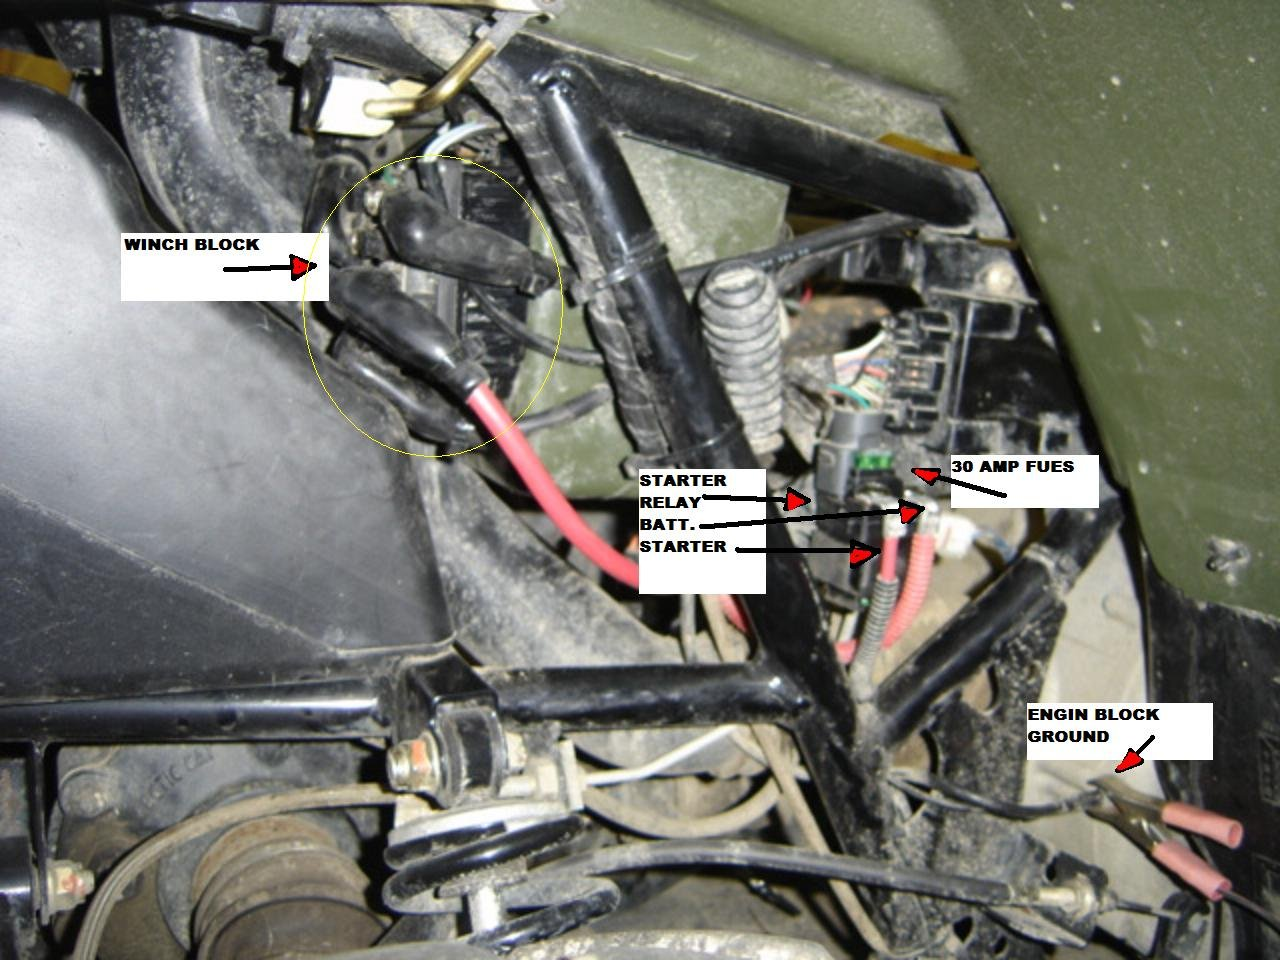 Wiring Diagram For Winch On Yamaha Grizzly